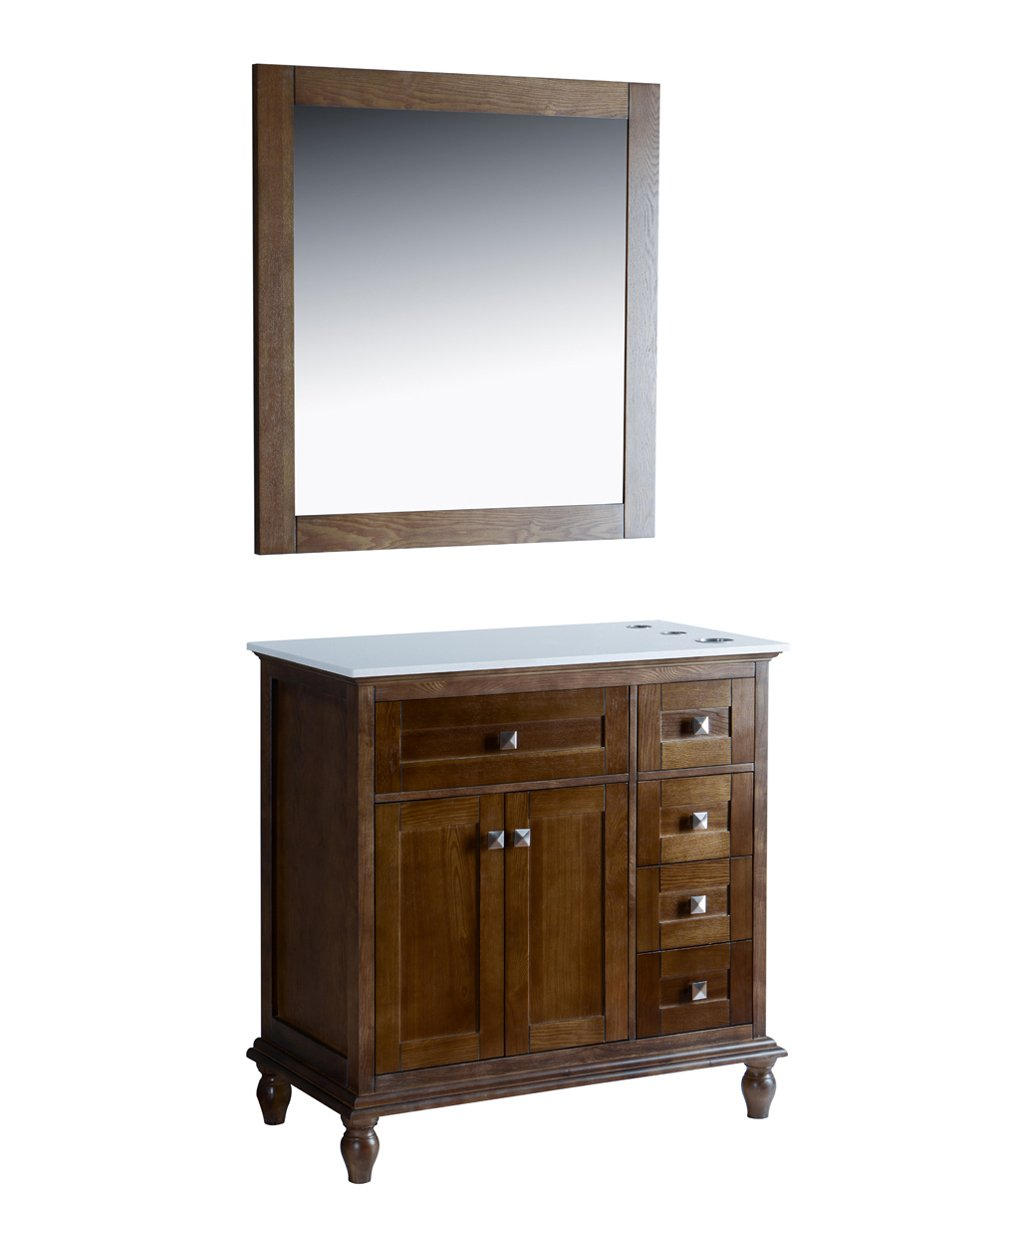 Introducing Buy-Rite's New Line of Vanity Styling Stations